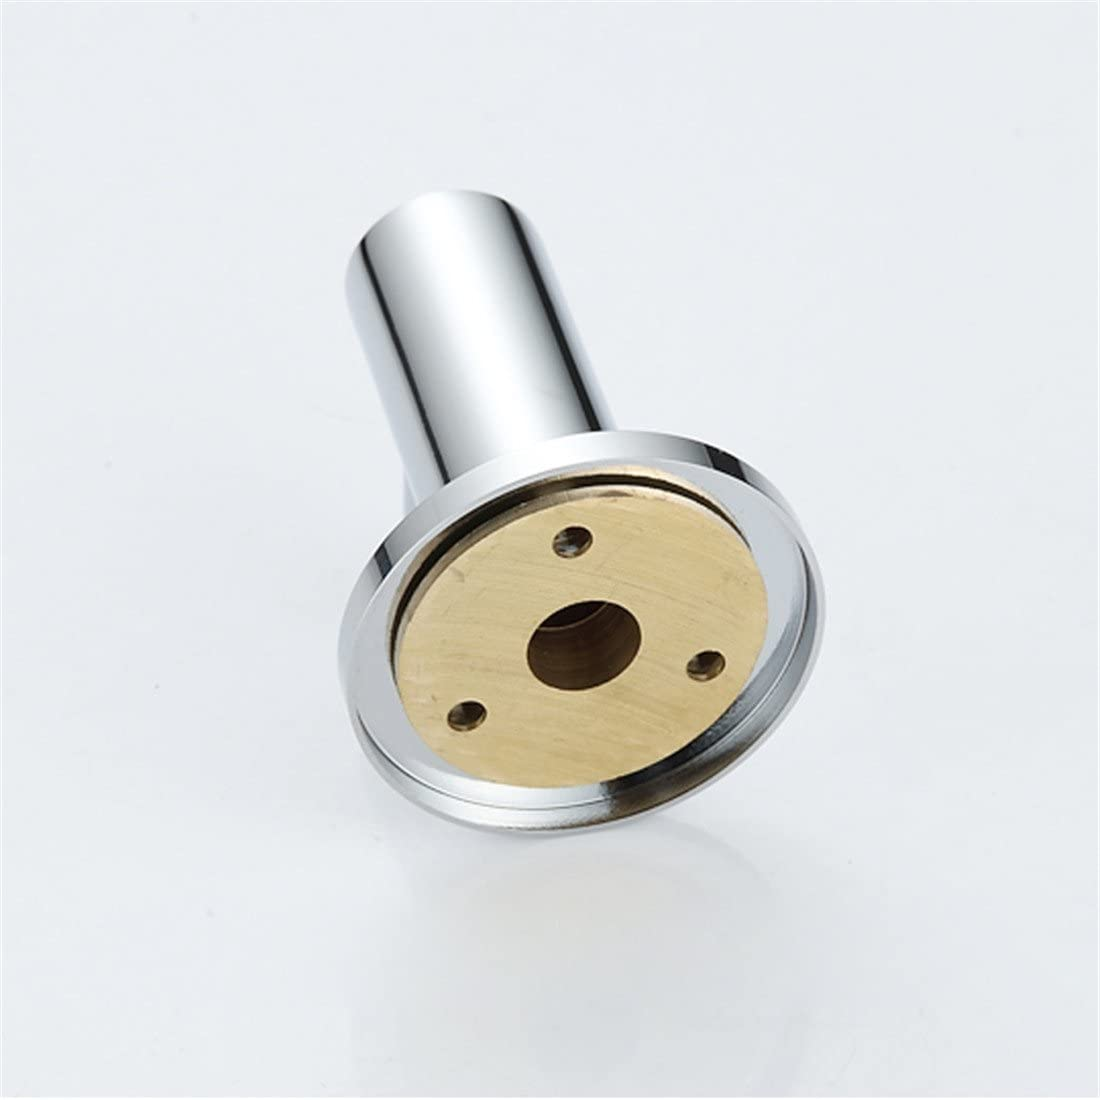 stainless/_steel, 53cm Aothpher 53cm Wall Mounted Stainless steel Shower arms For Fixed Shower Heads with Copper holder